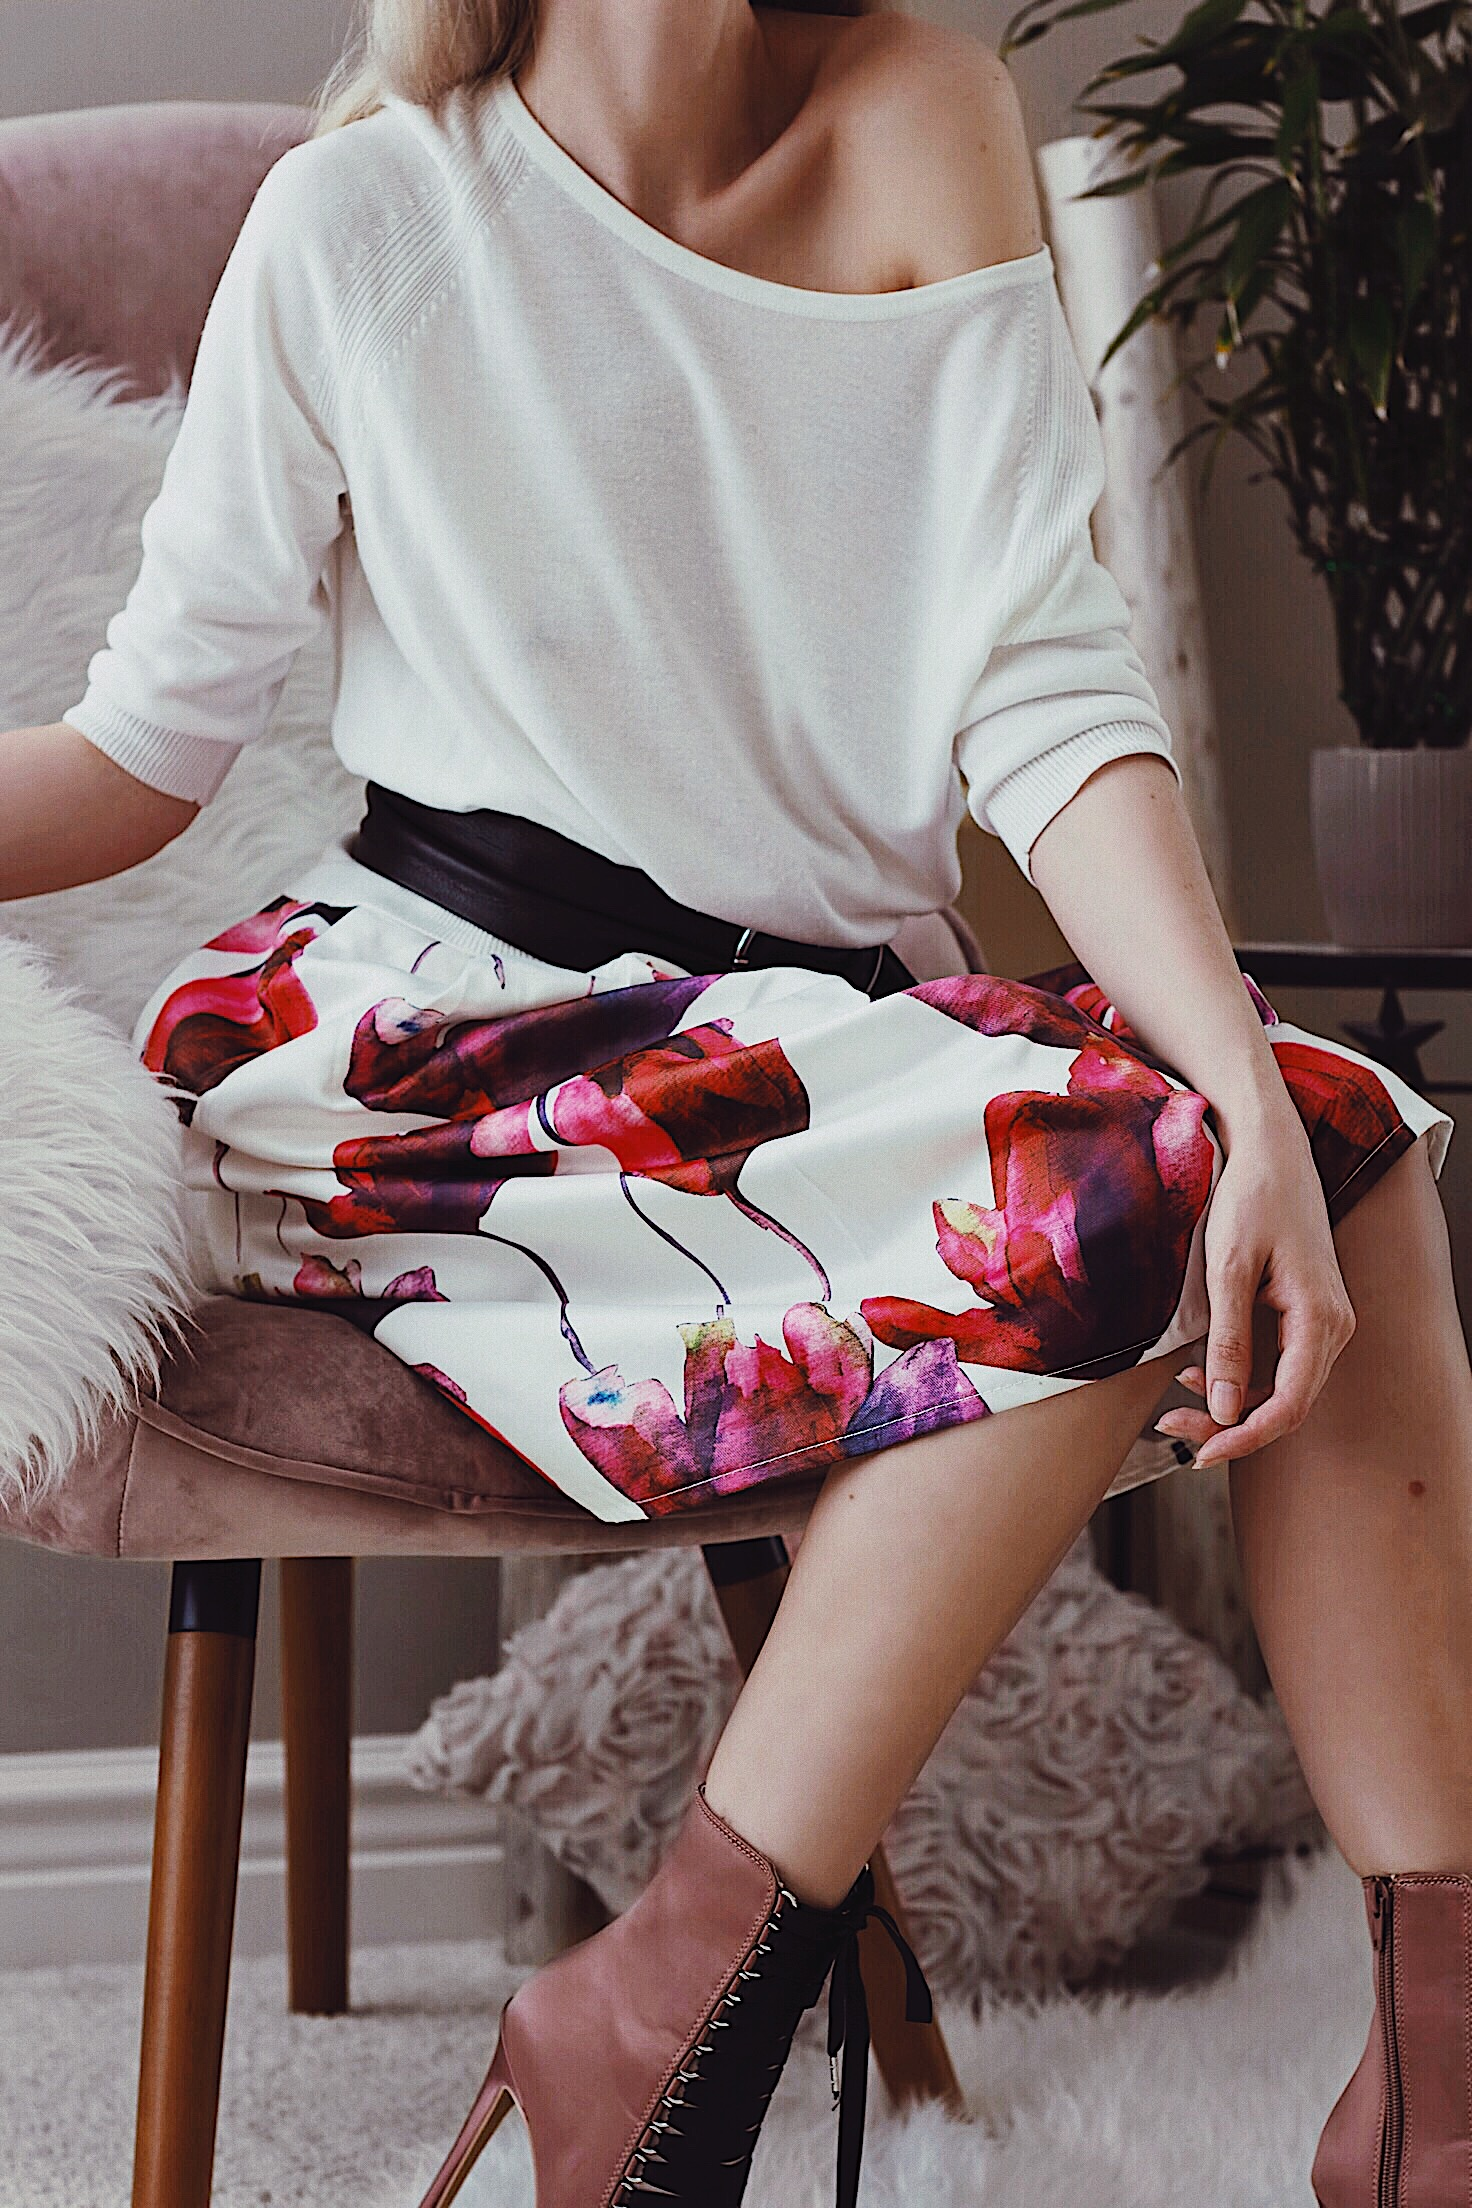 Watercolor Flower Print Skirt and Off the Shoulder White Sweater Fashion